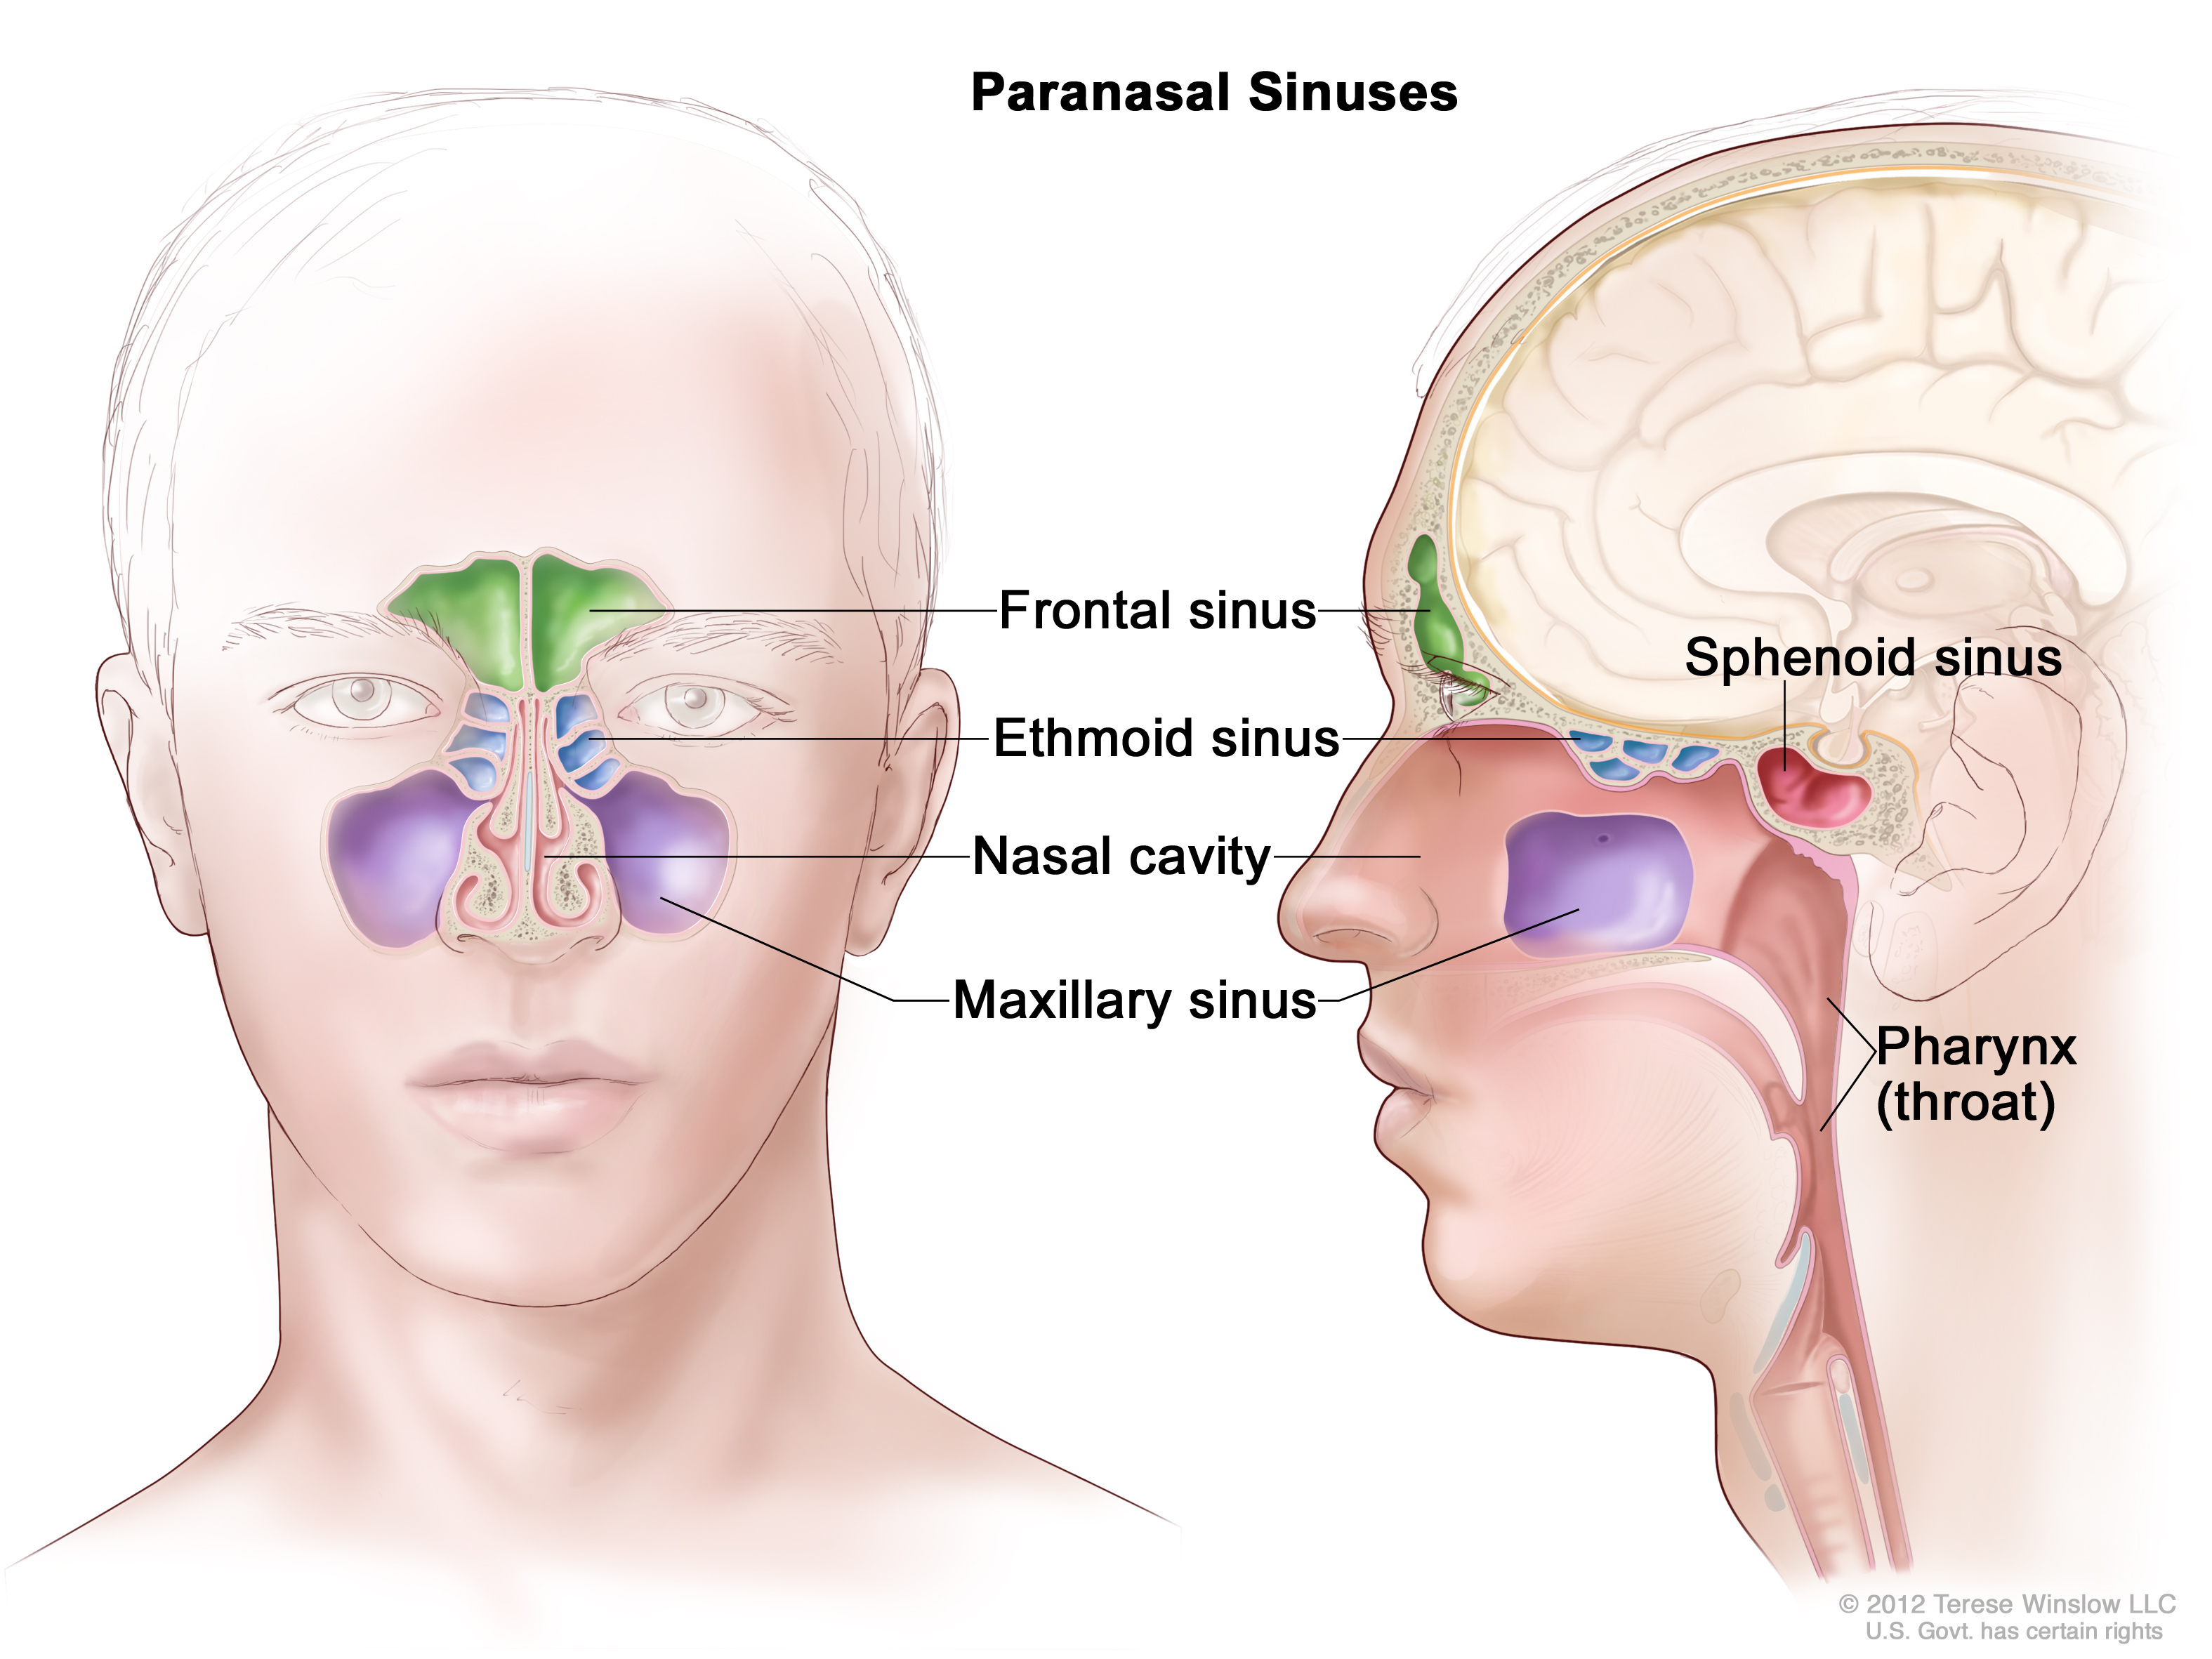 Illustration of the paranasal Sinuses.